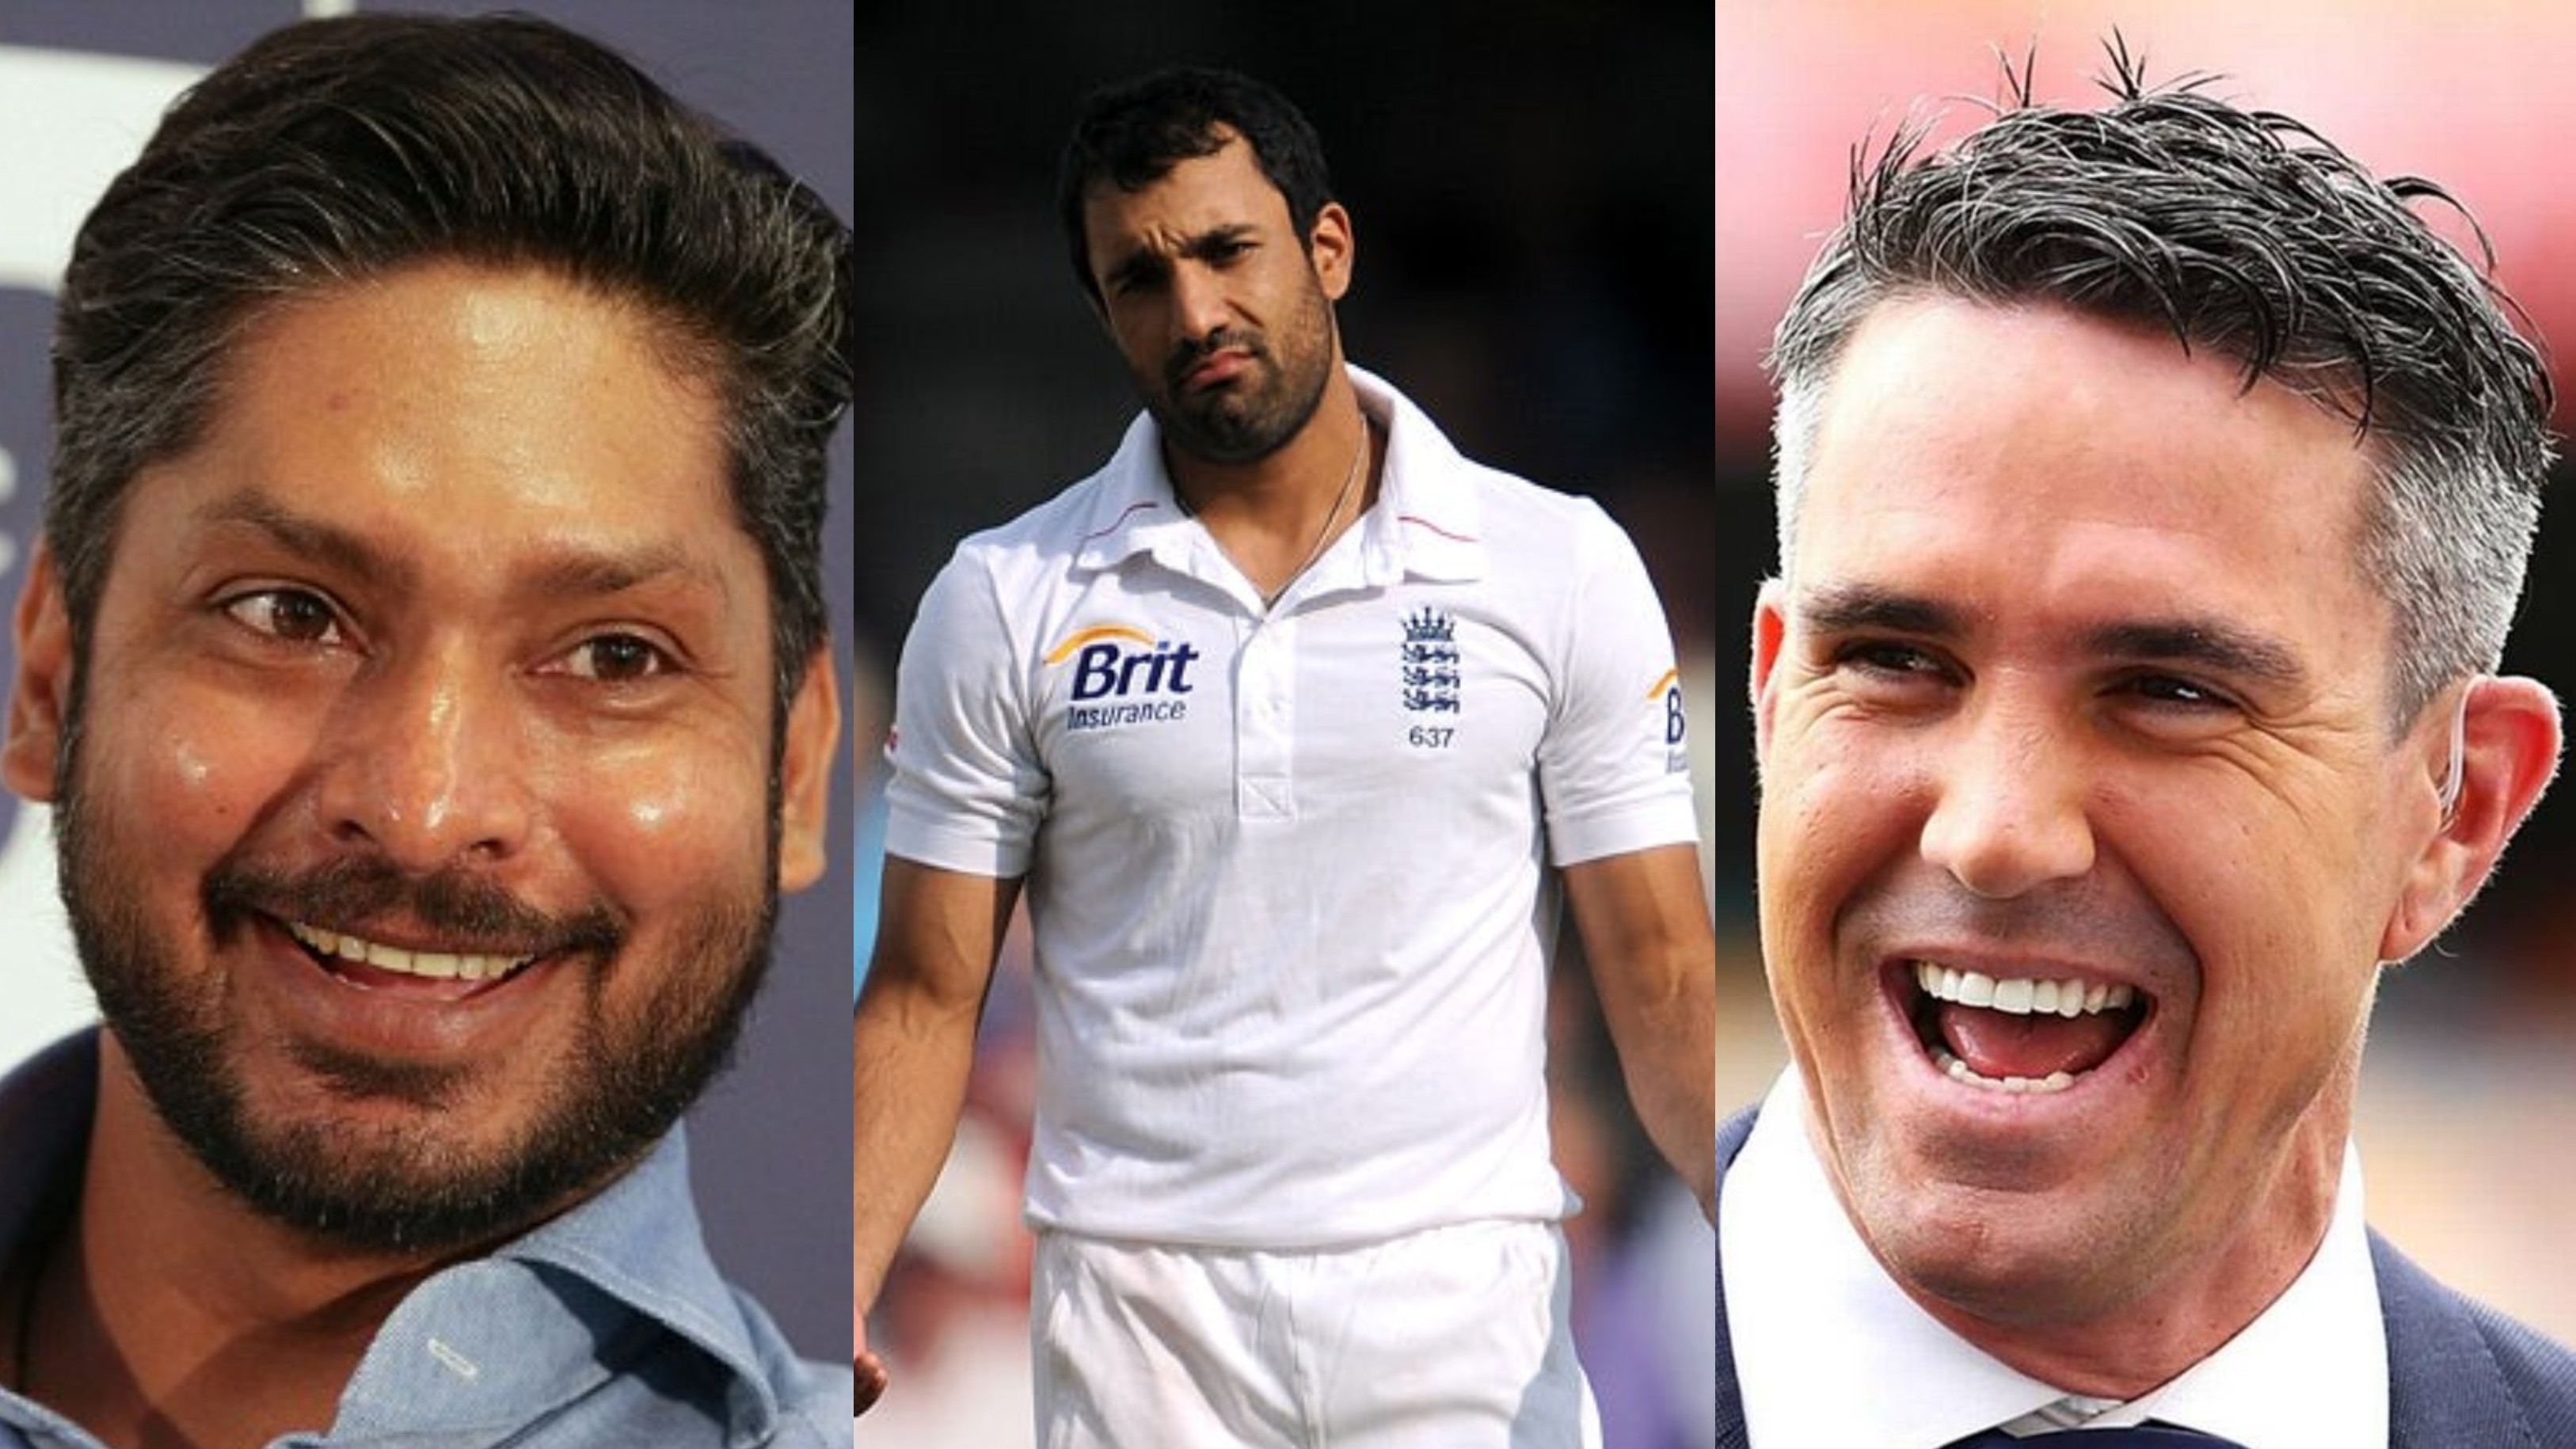 Kumar Sangakkara and Kevin Pietersen ruthlessly mock Ravi Bopara over his old picture